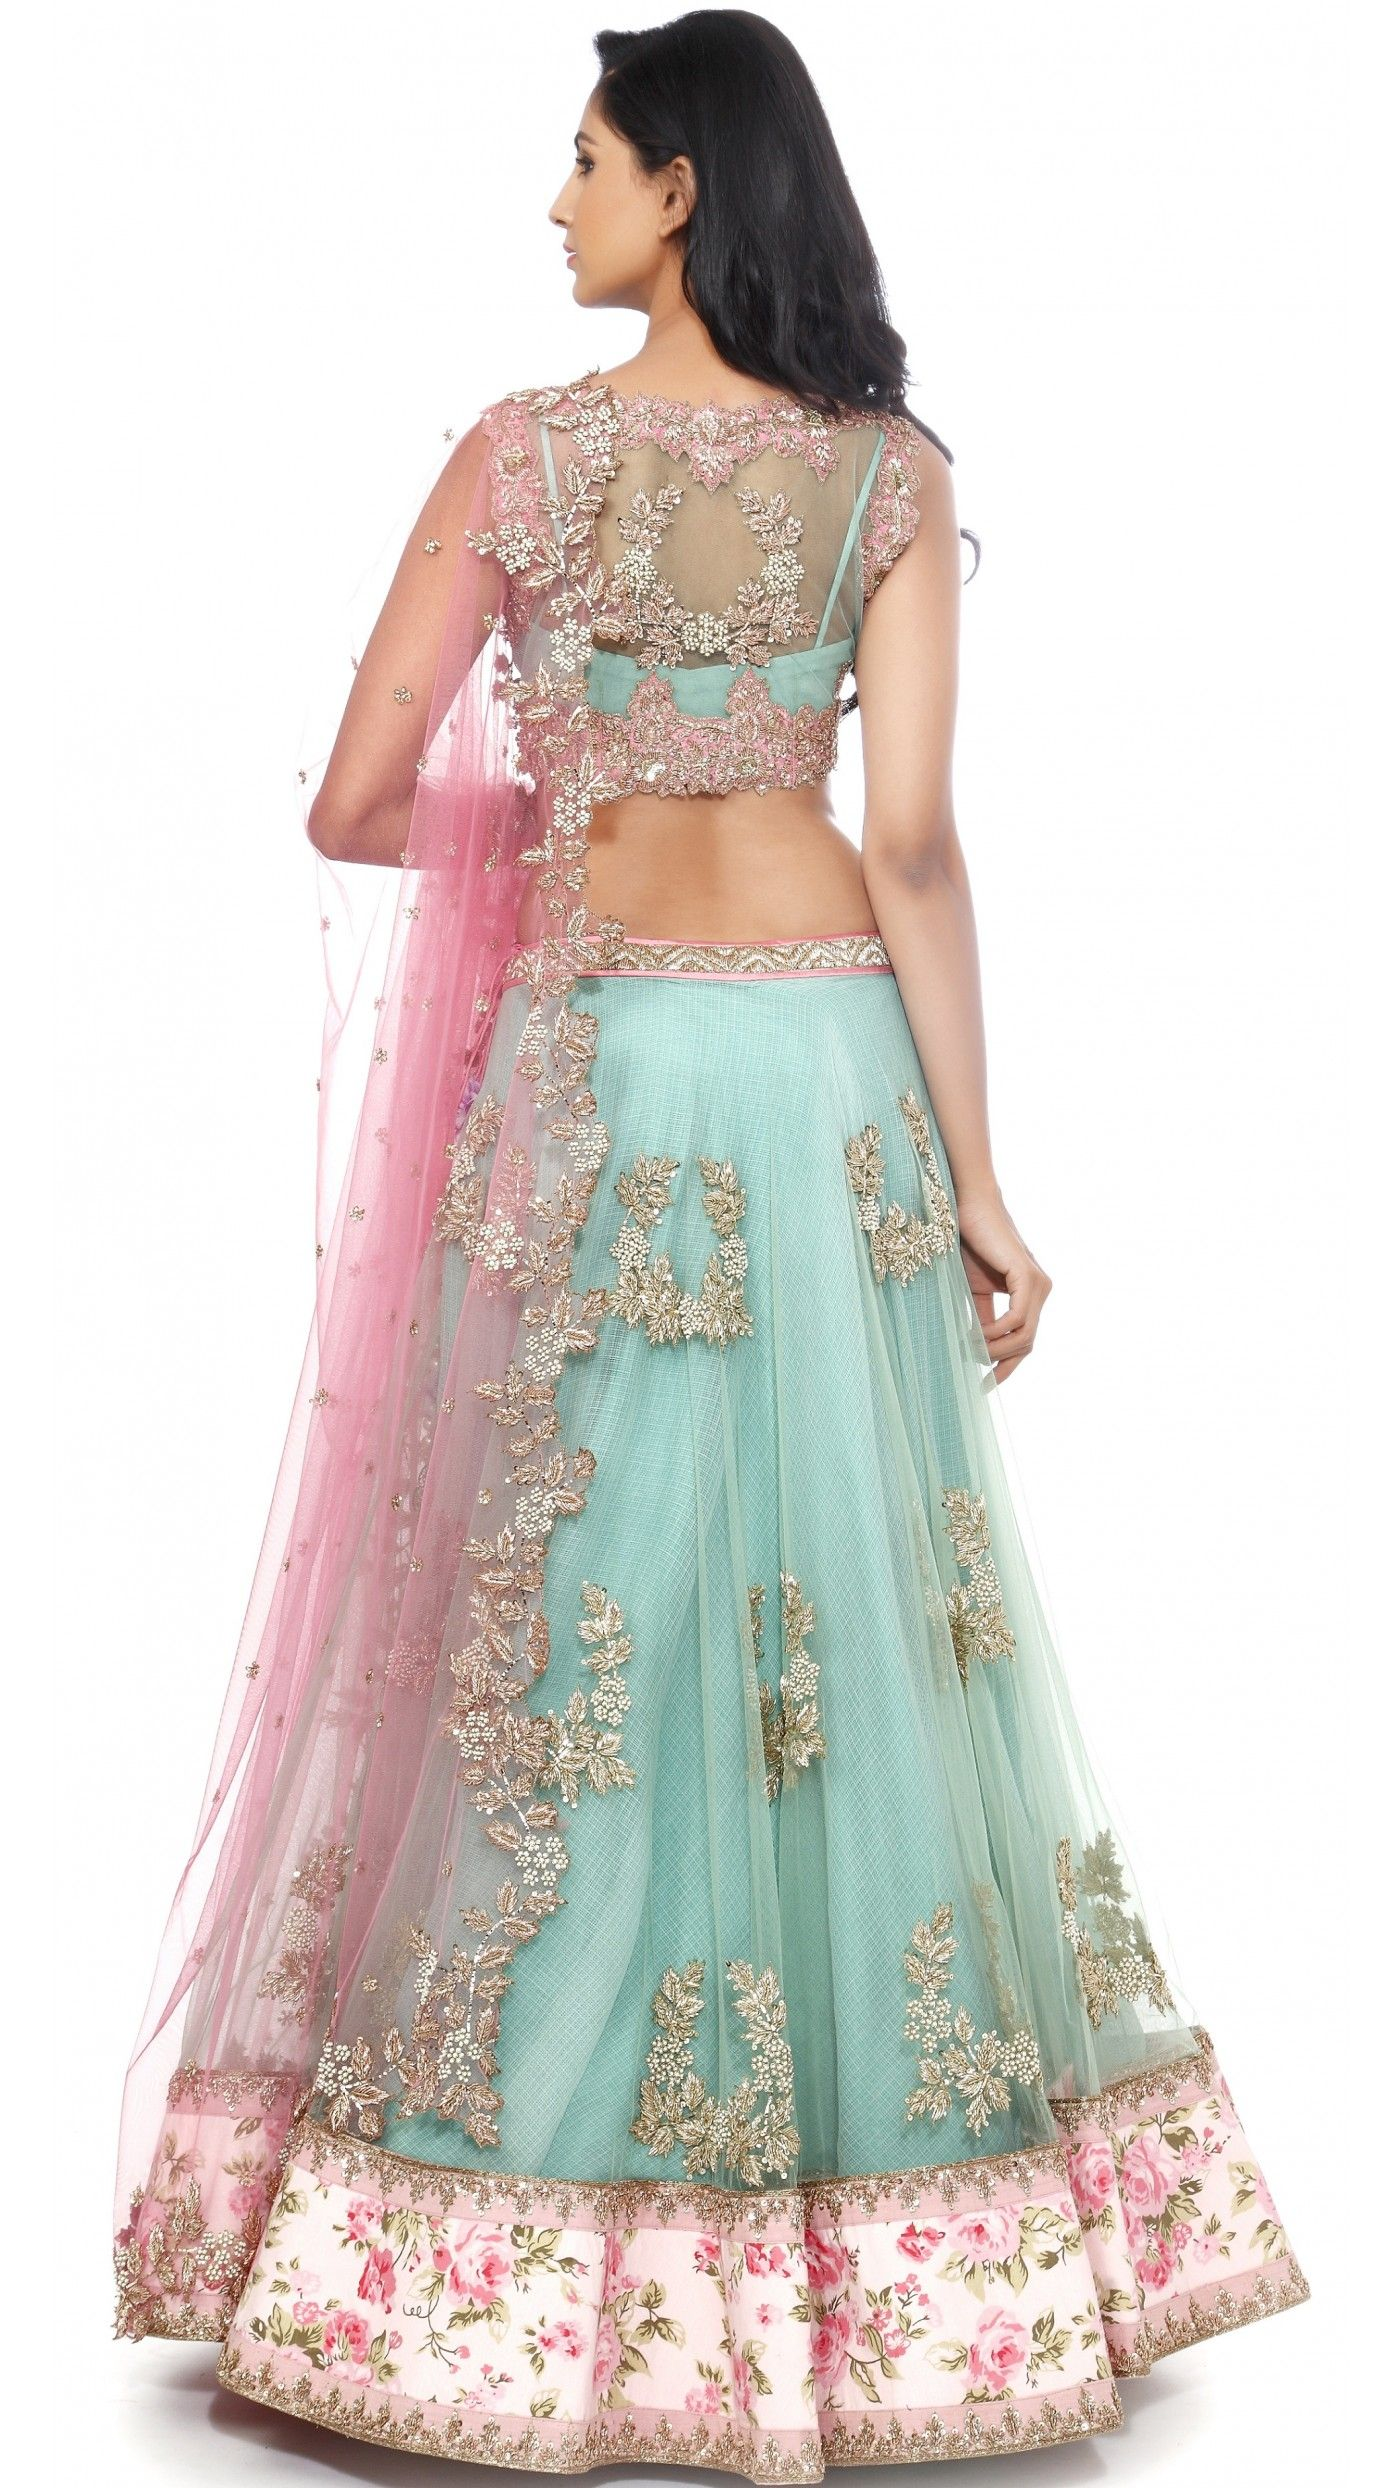 f1eb7a0769 Buy Anushree Reddy's Sea Green and Pink Lengha Set Online - Jiva ...